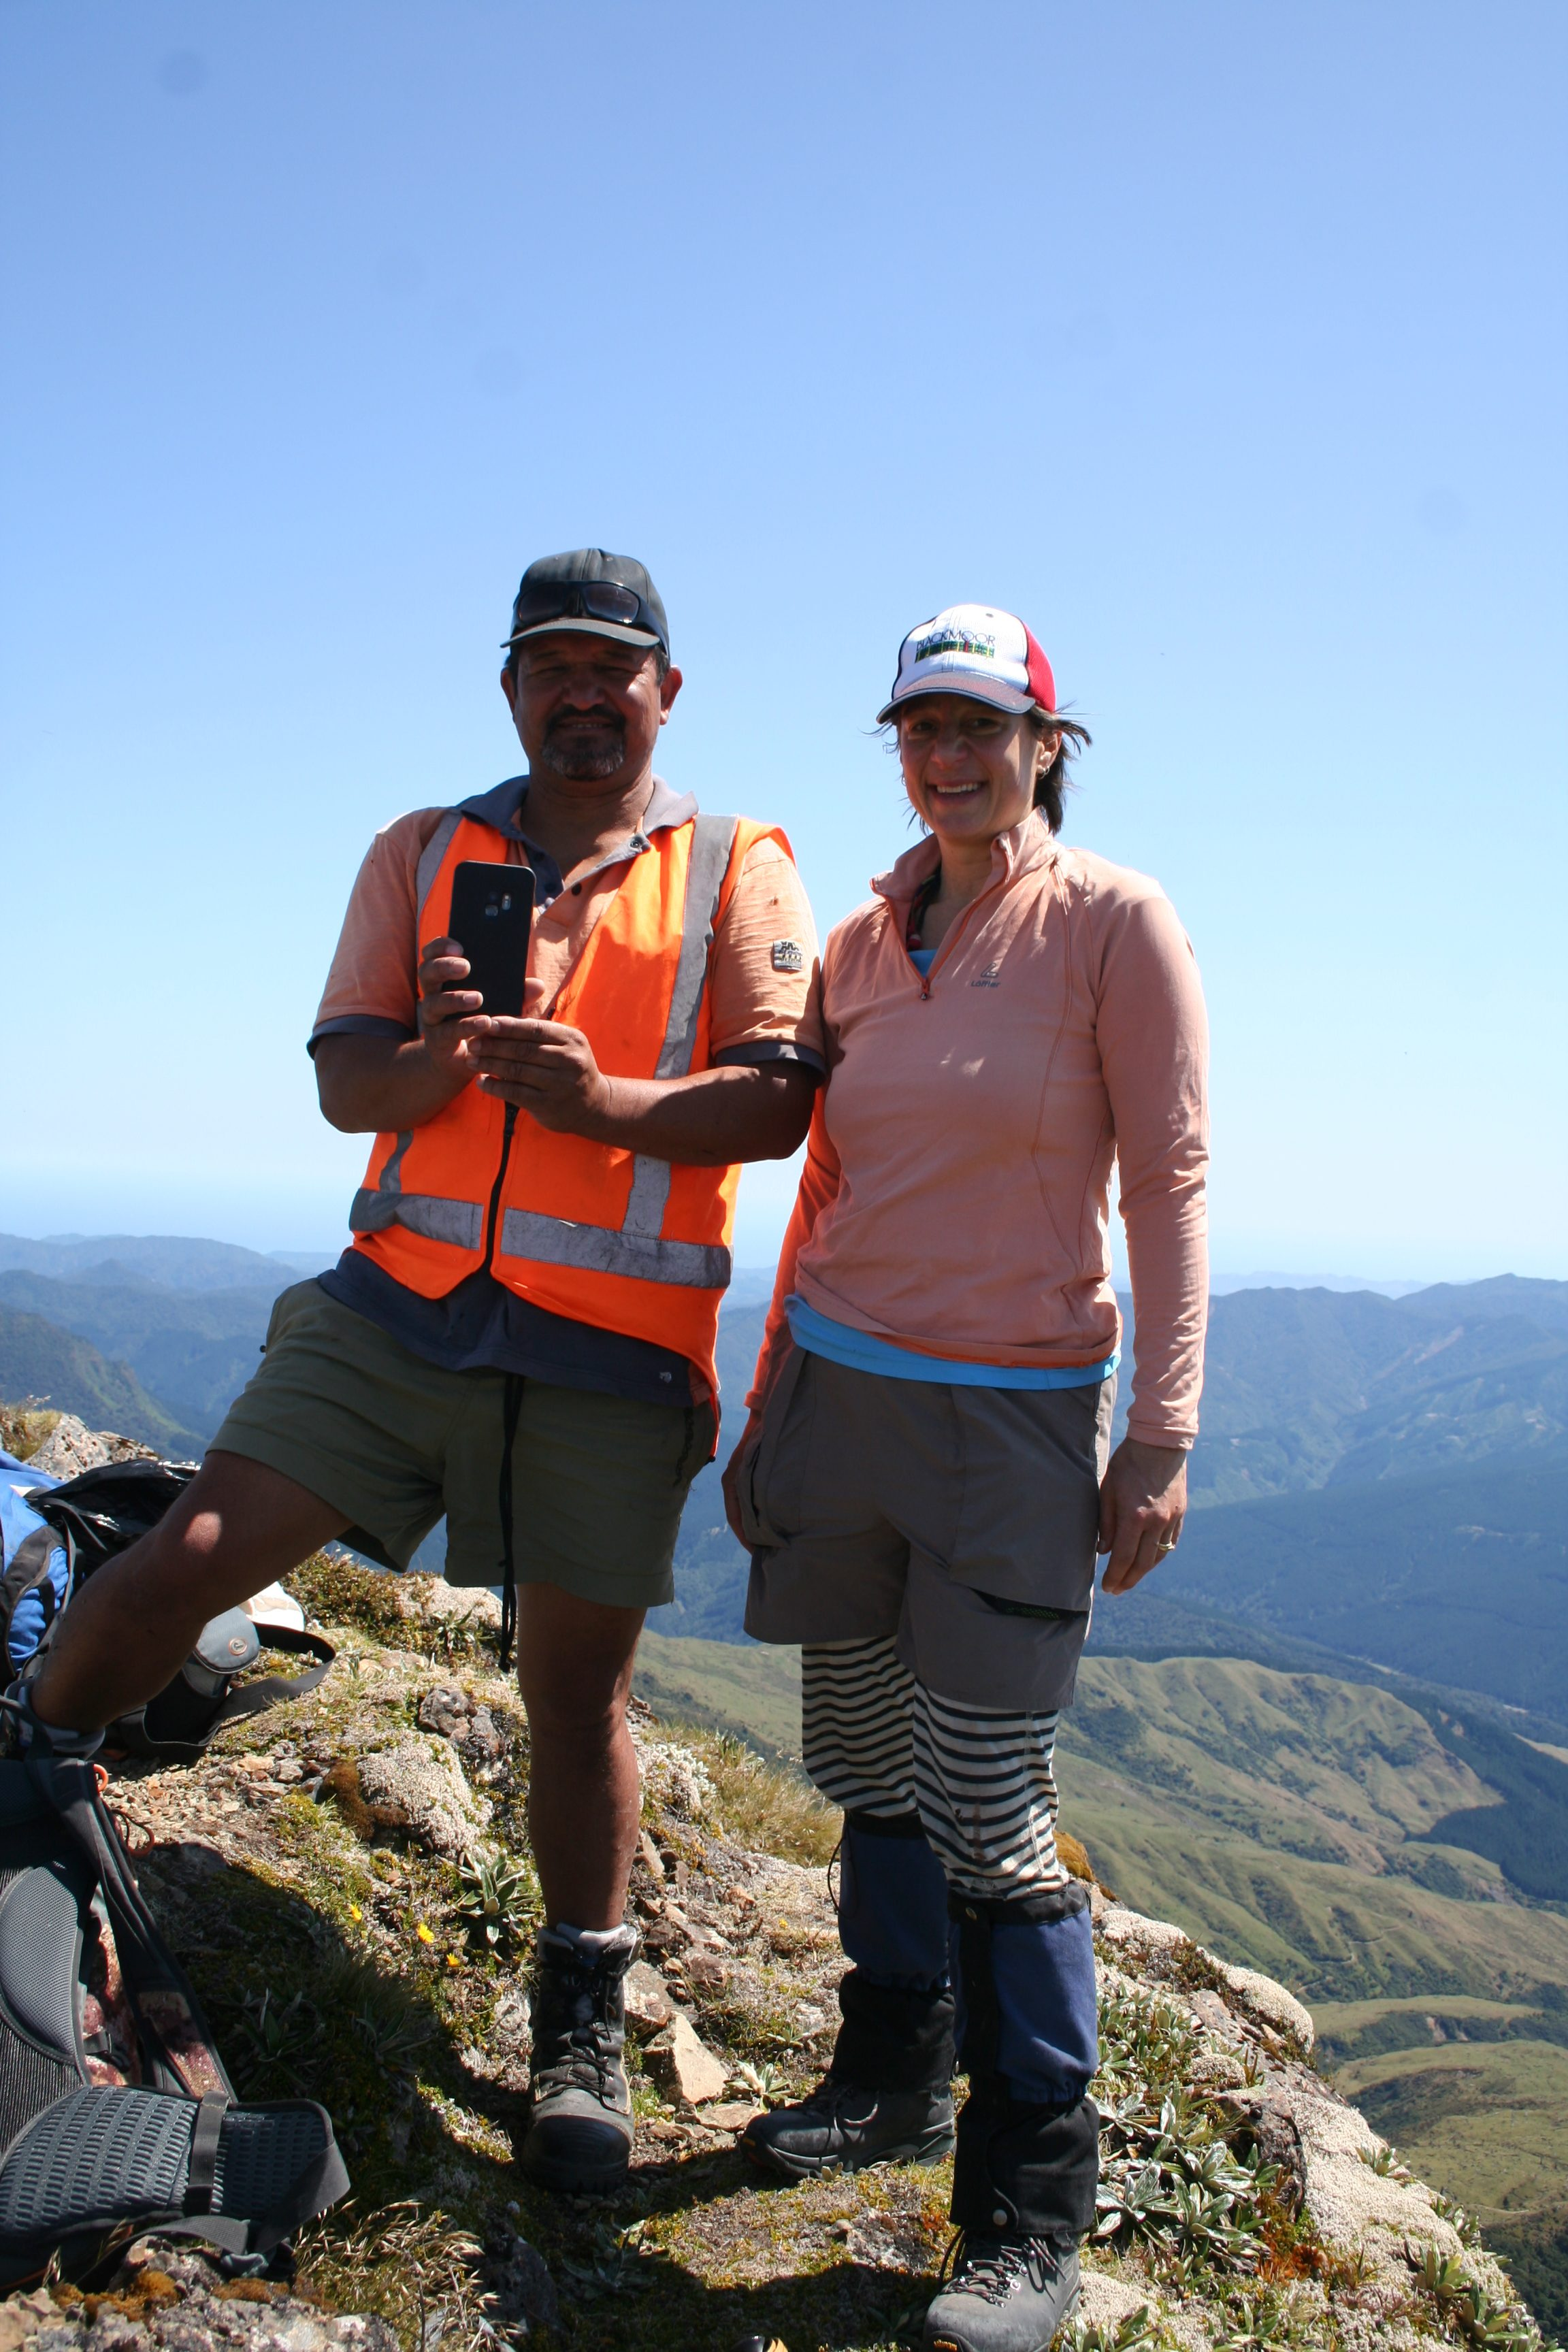 Two people in hiking gear and caps standing on the top of a mountain with blue sky and more mountains in the background. One person is holding a phone up and is wearing a high-vis vest